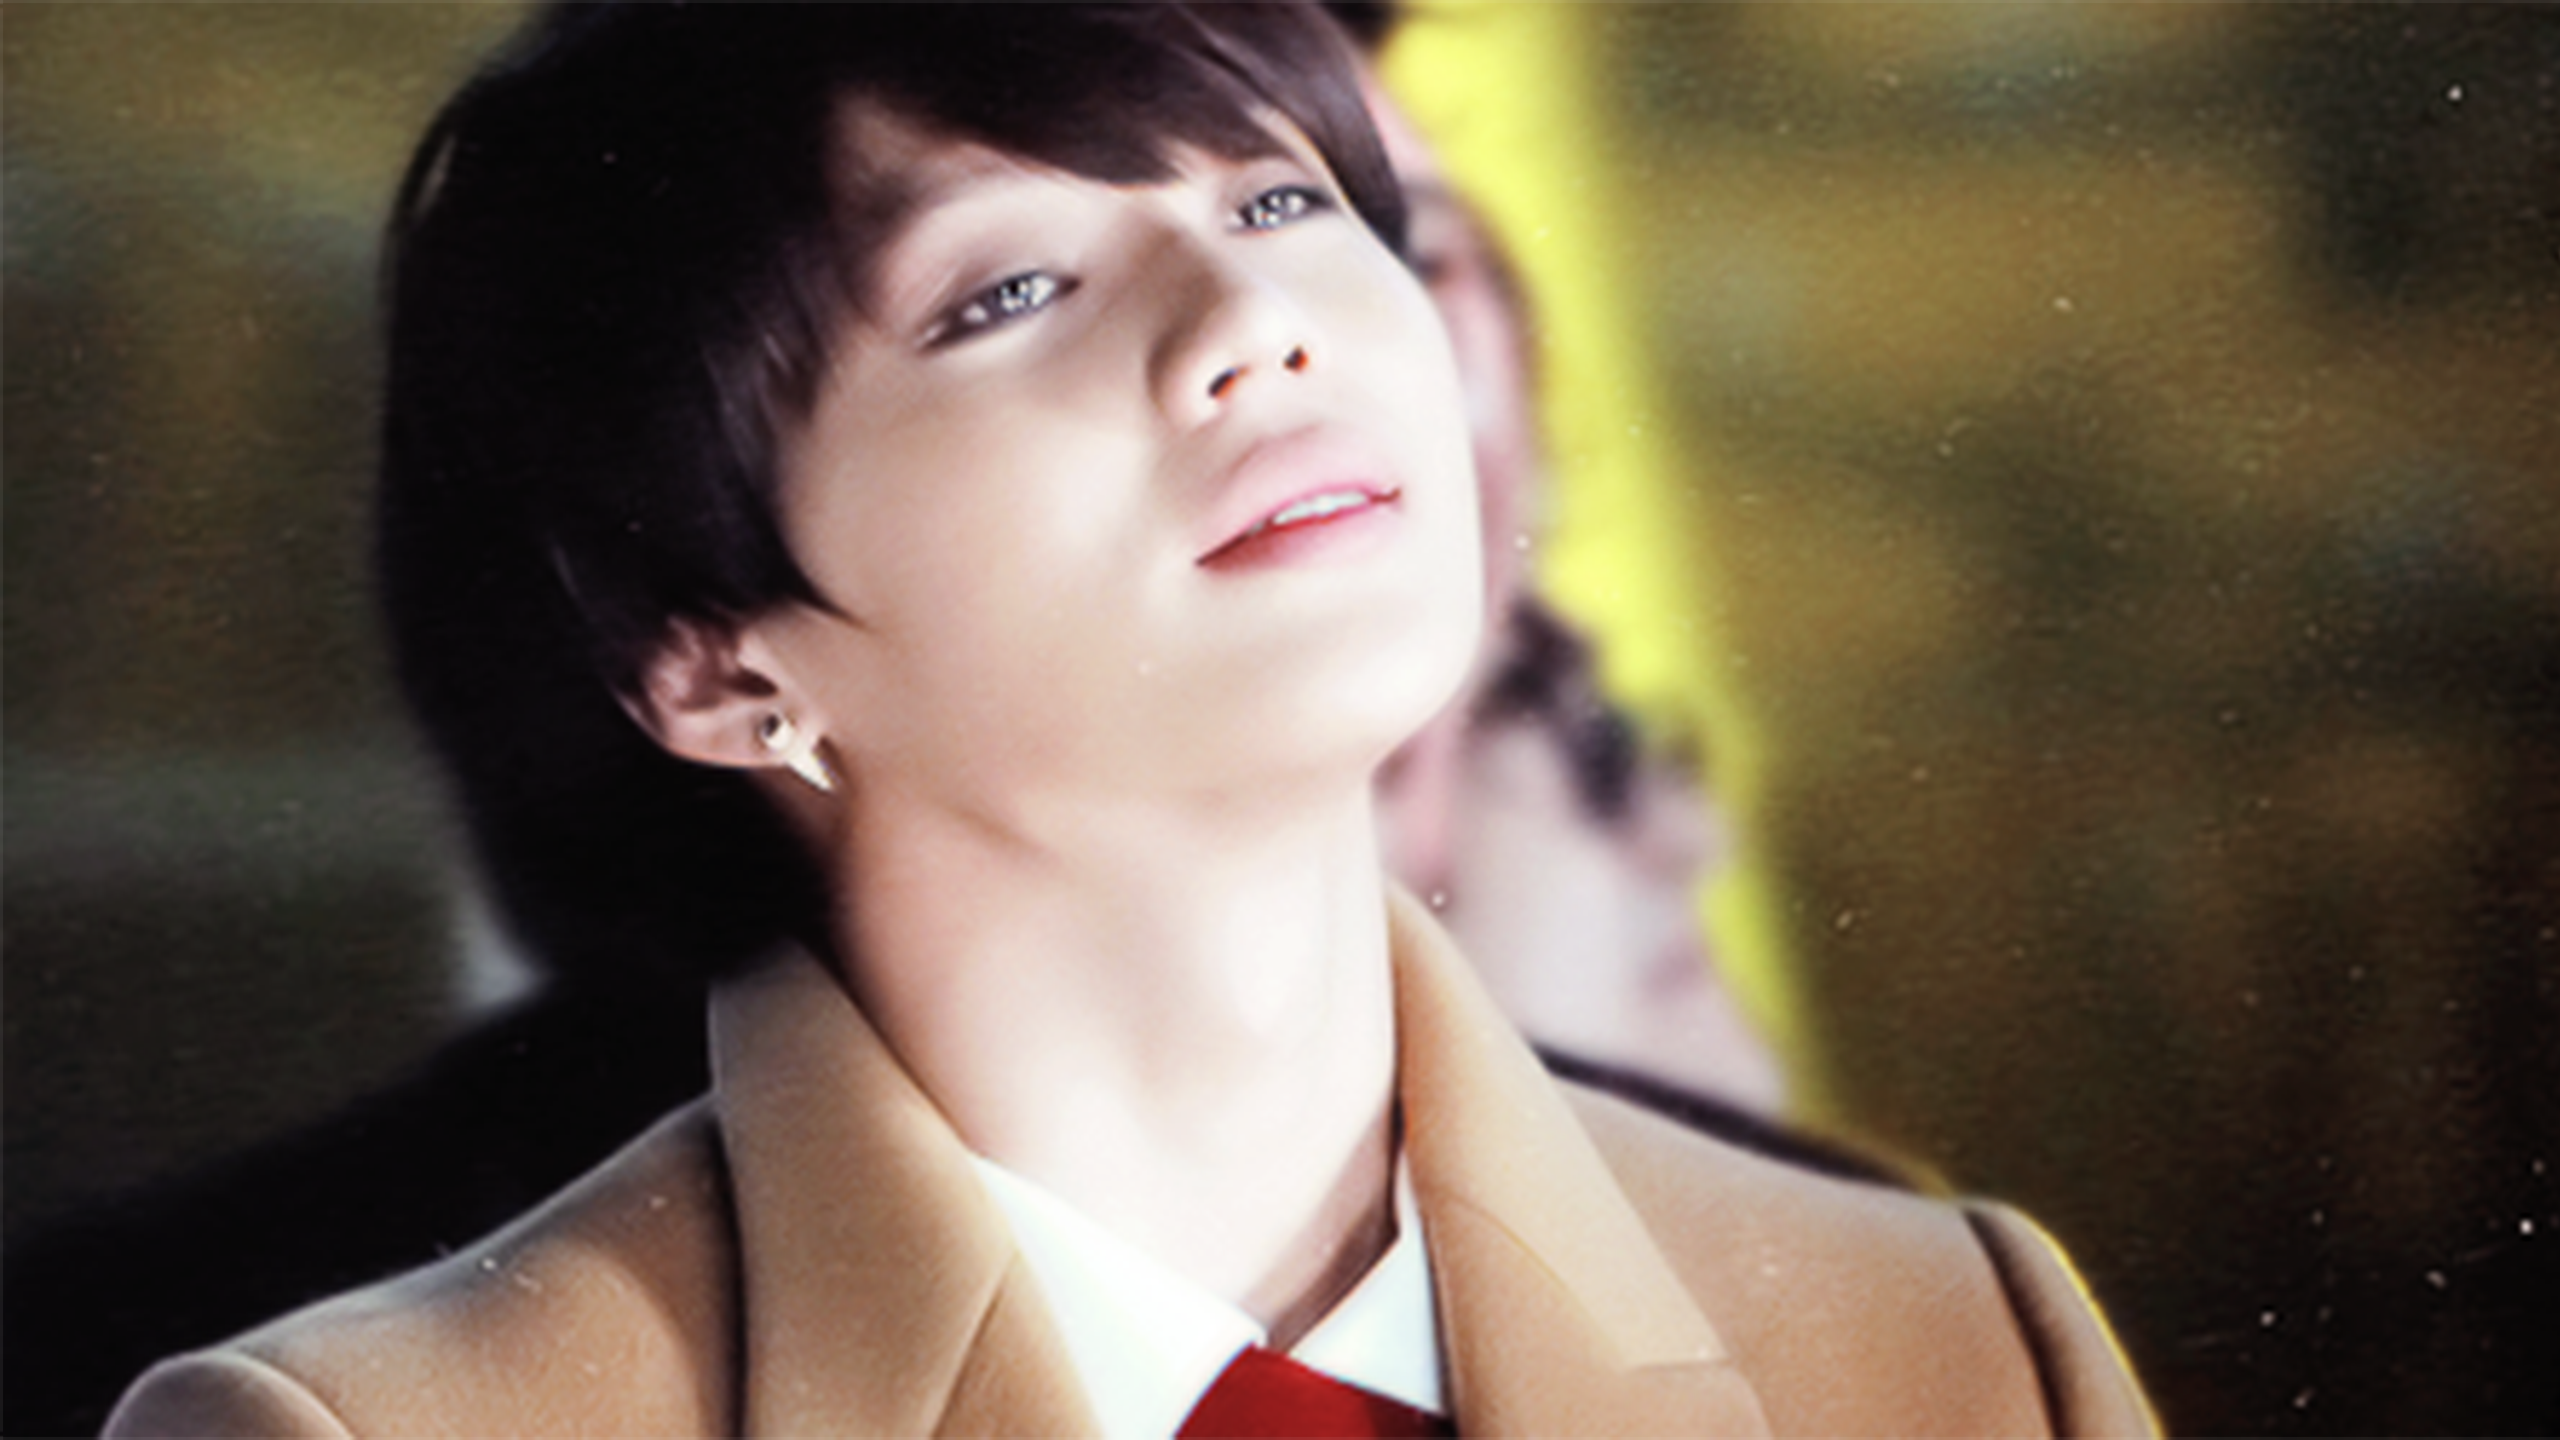 Taemin Wallpaper   Lee Taemin Wallpaper 36173852 2560x1440